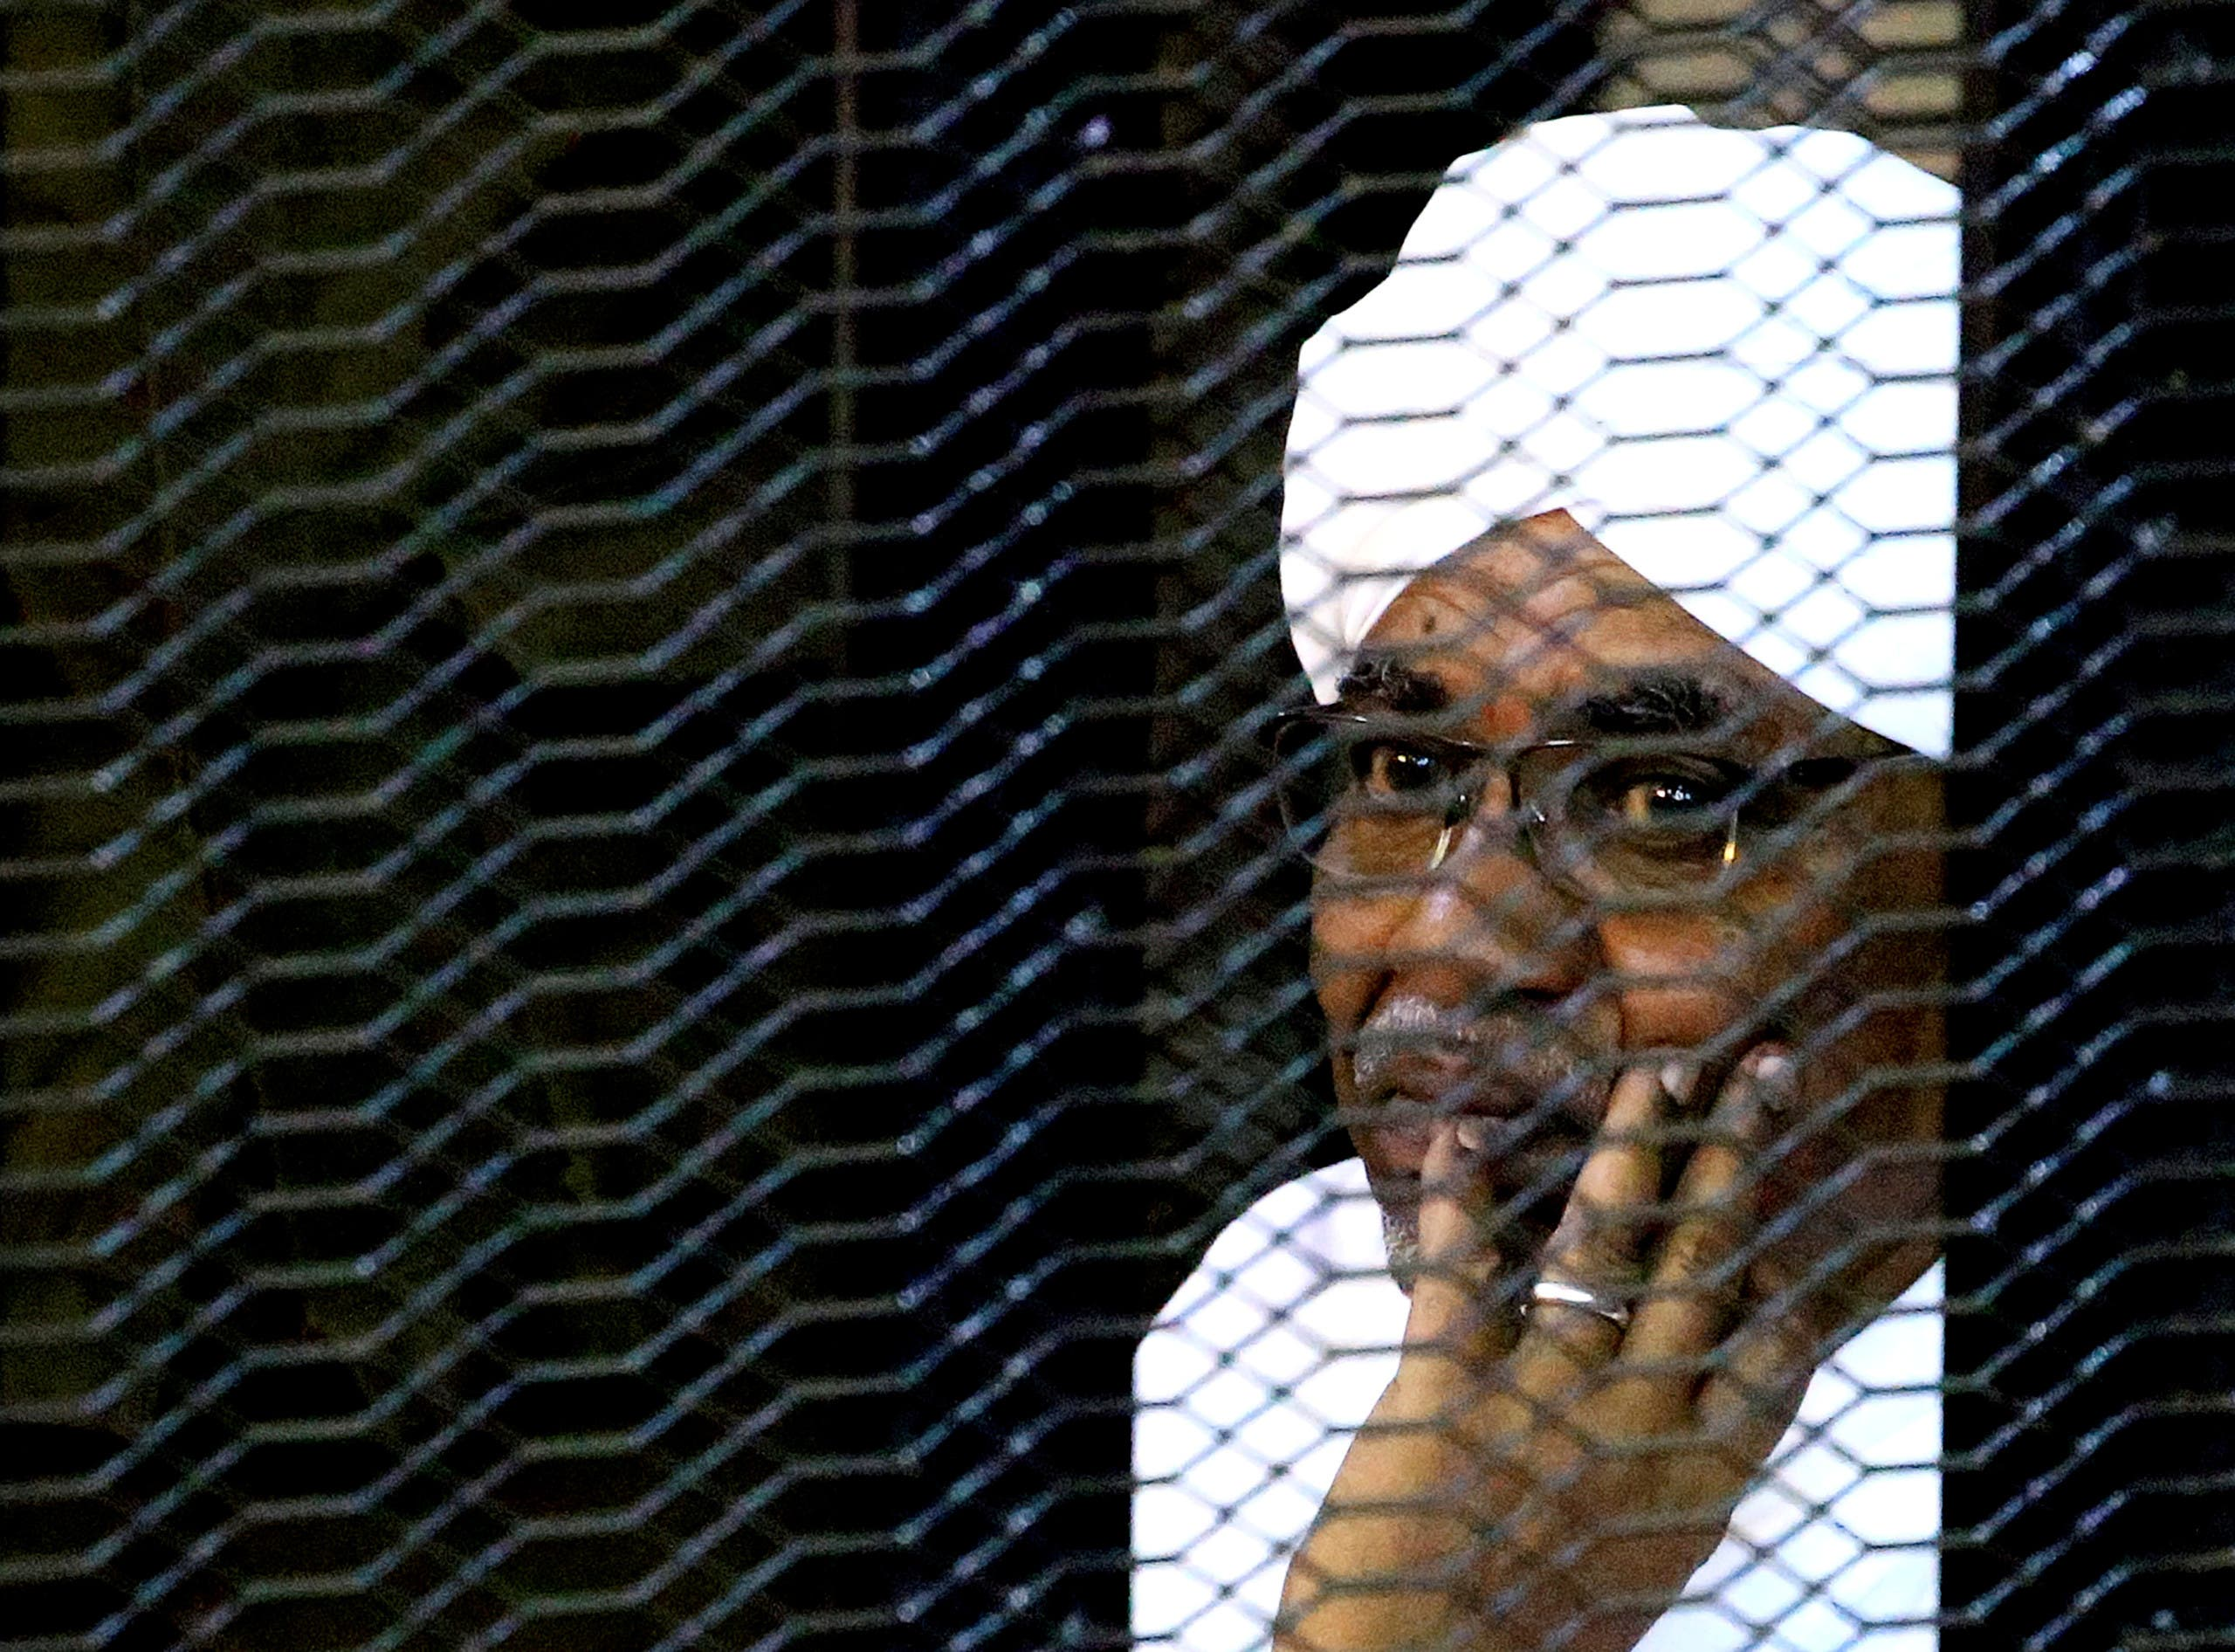 Sudan's former President Omar al-Bashir sits inside a cage at the courthouse where he is facing corruption charges, in Khartoum, Sudan, September 28, 2019. (File photo: Reuters)